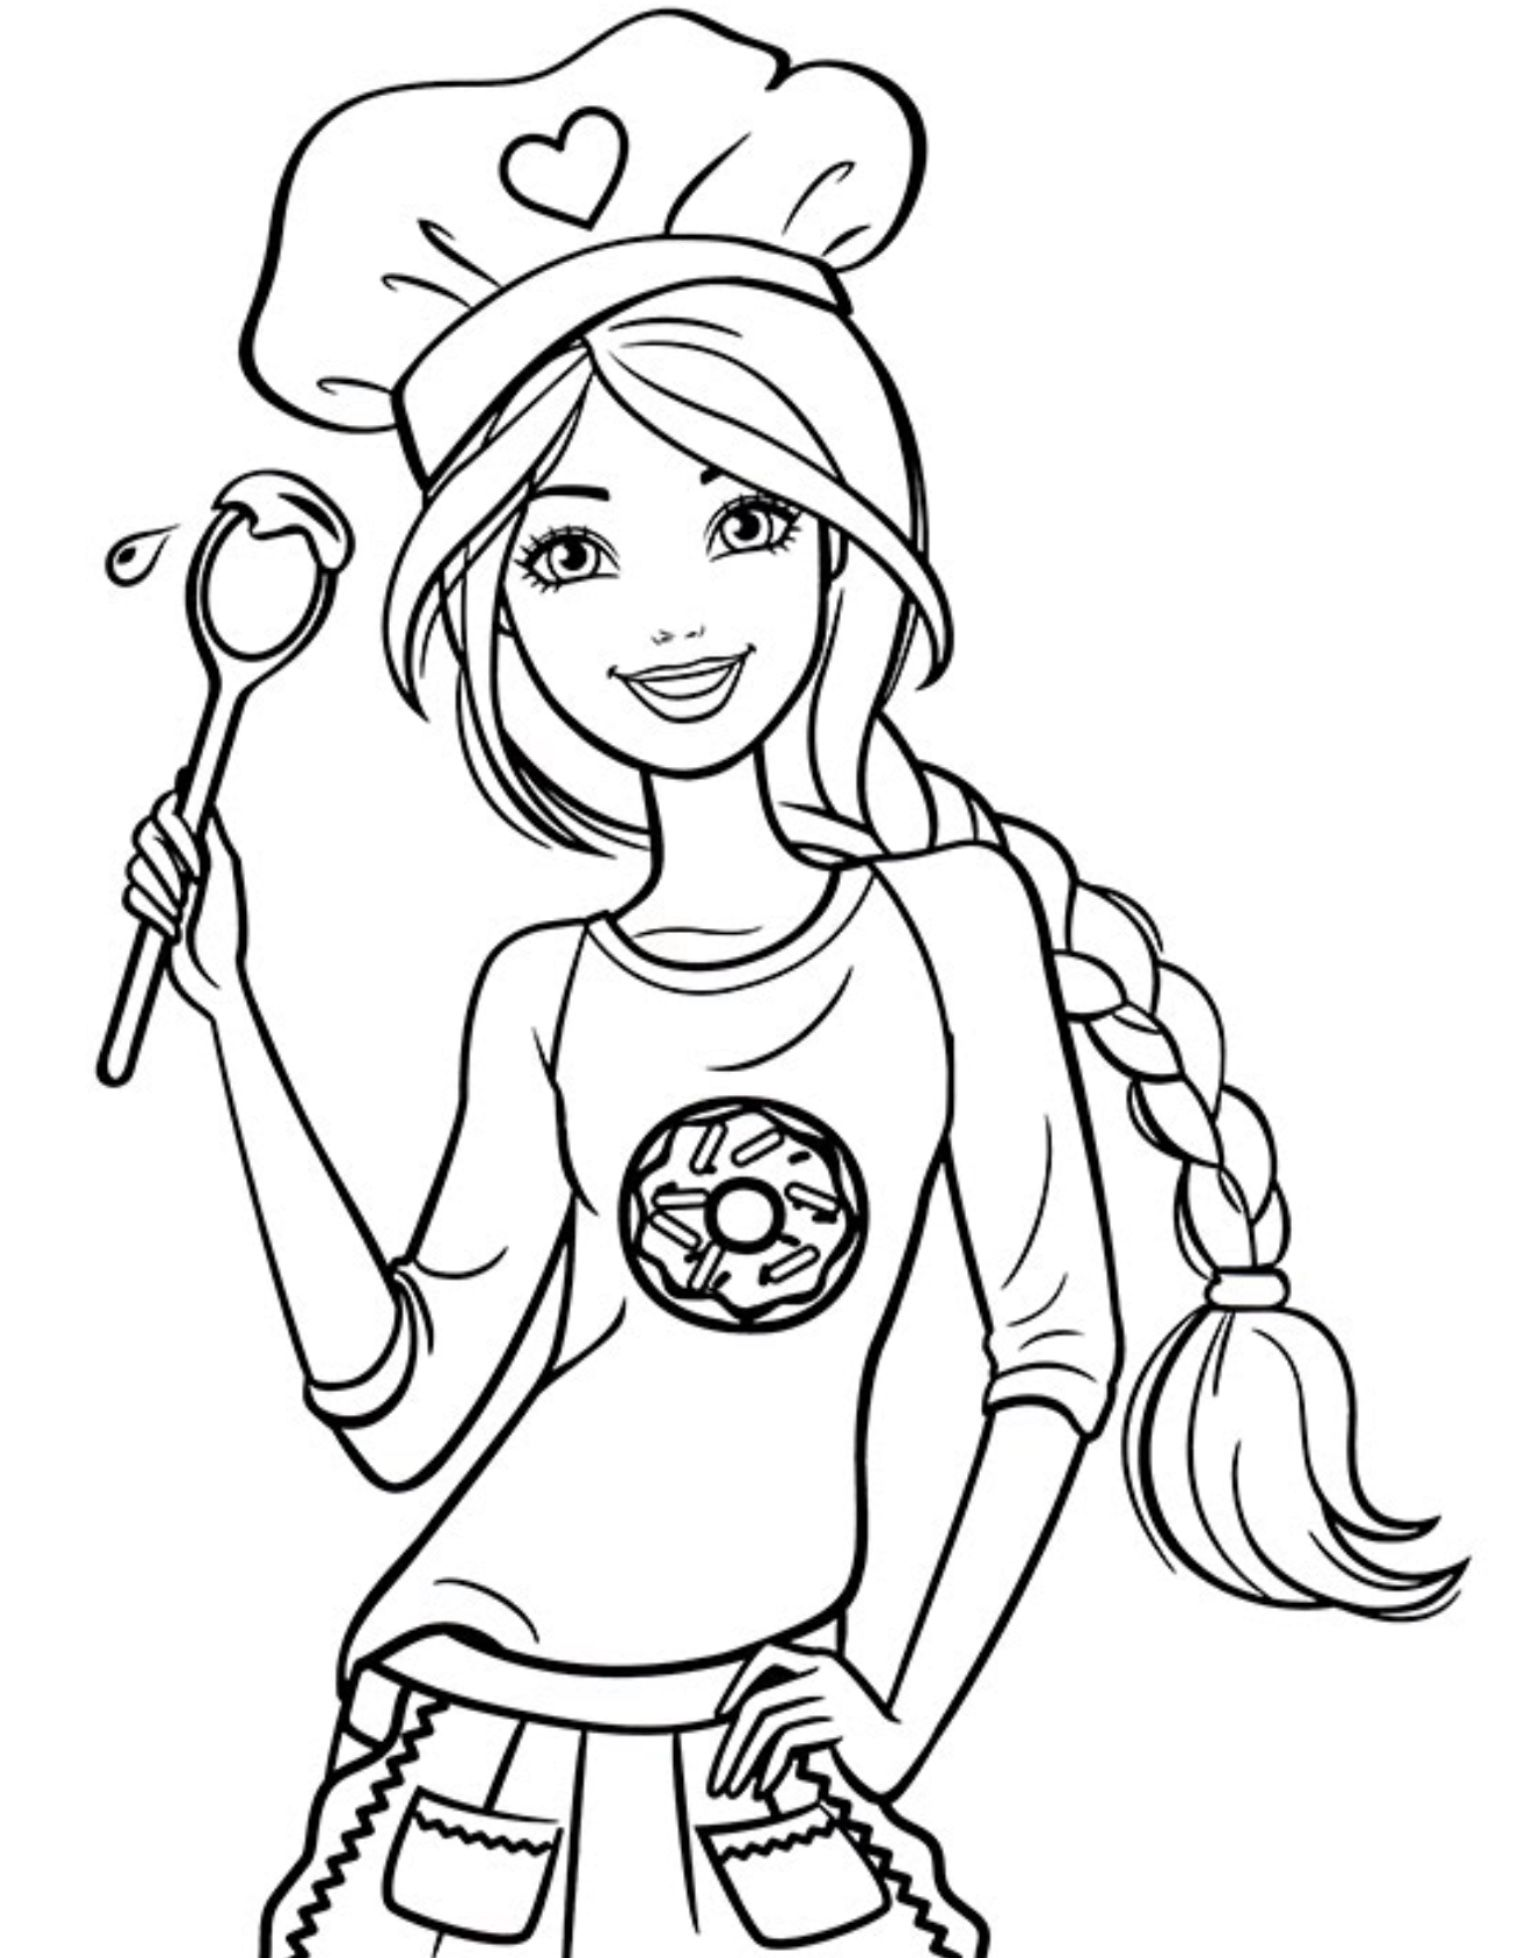 Chef Barbie Coloring Page Barbie Coloring Pages Barbie Coloring